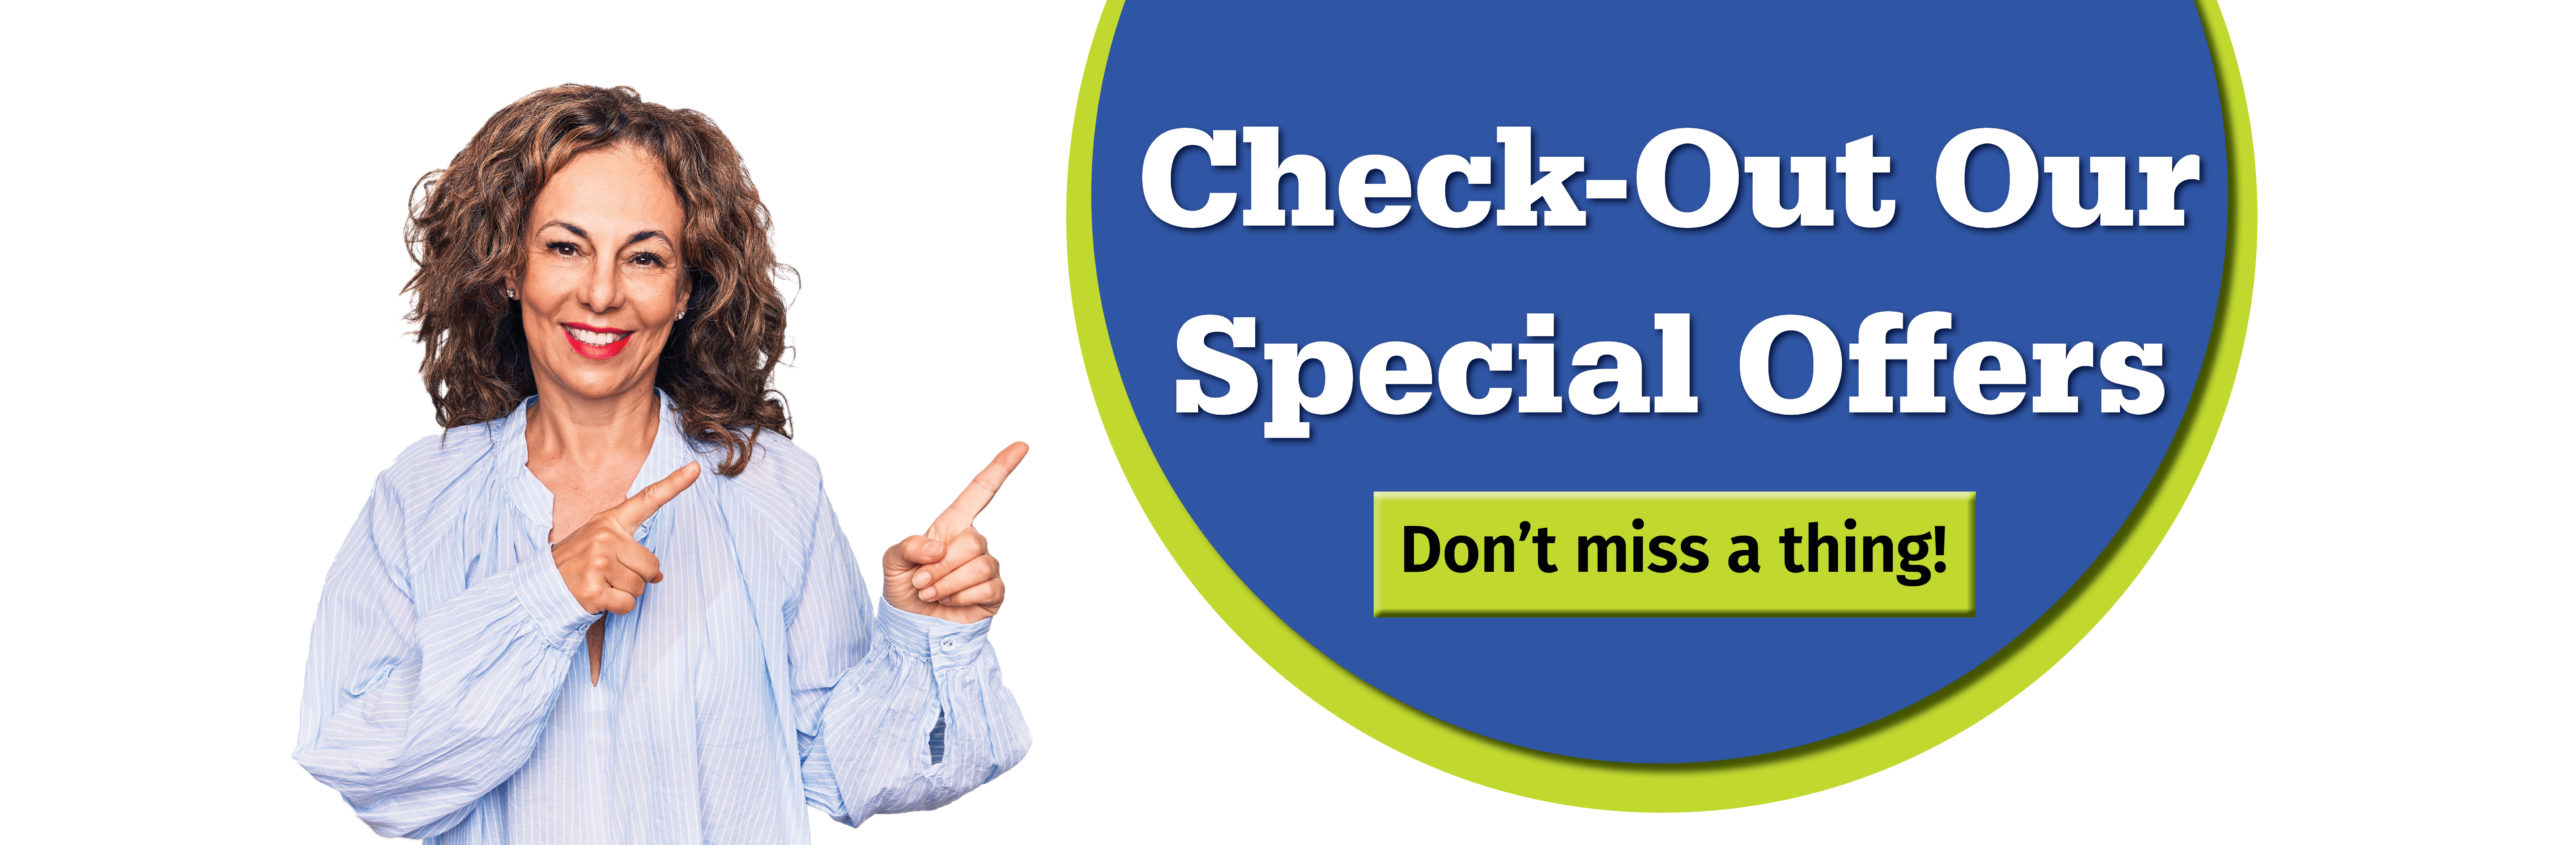 Check out our special offers. Don't miss a thing!